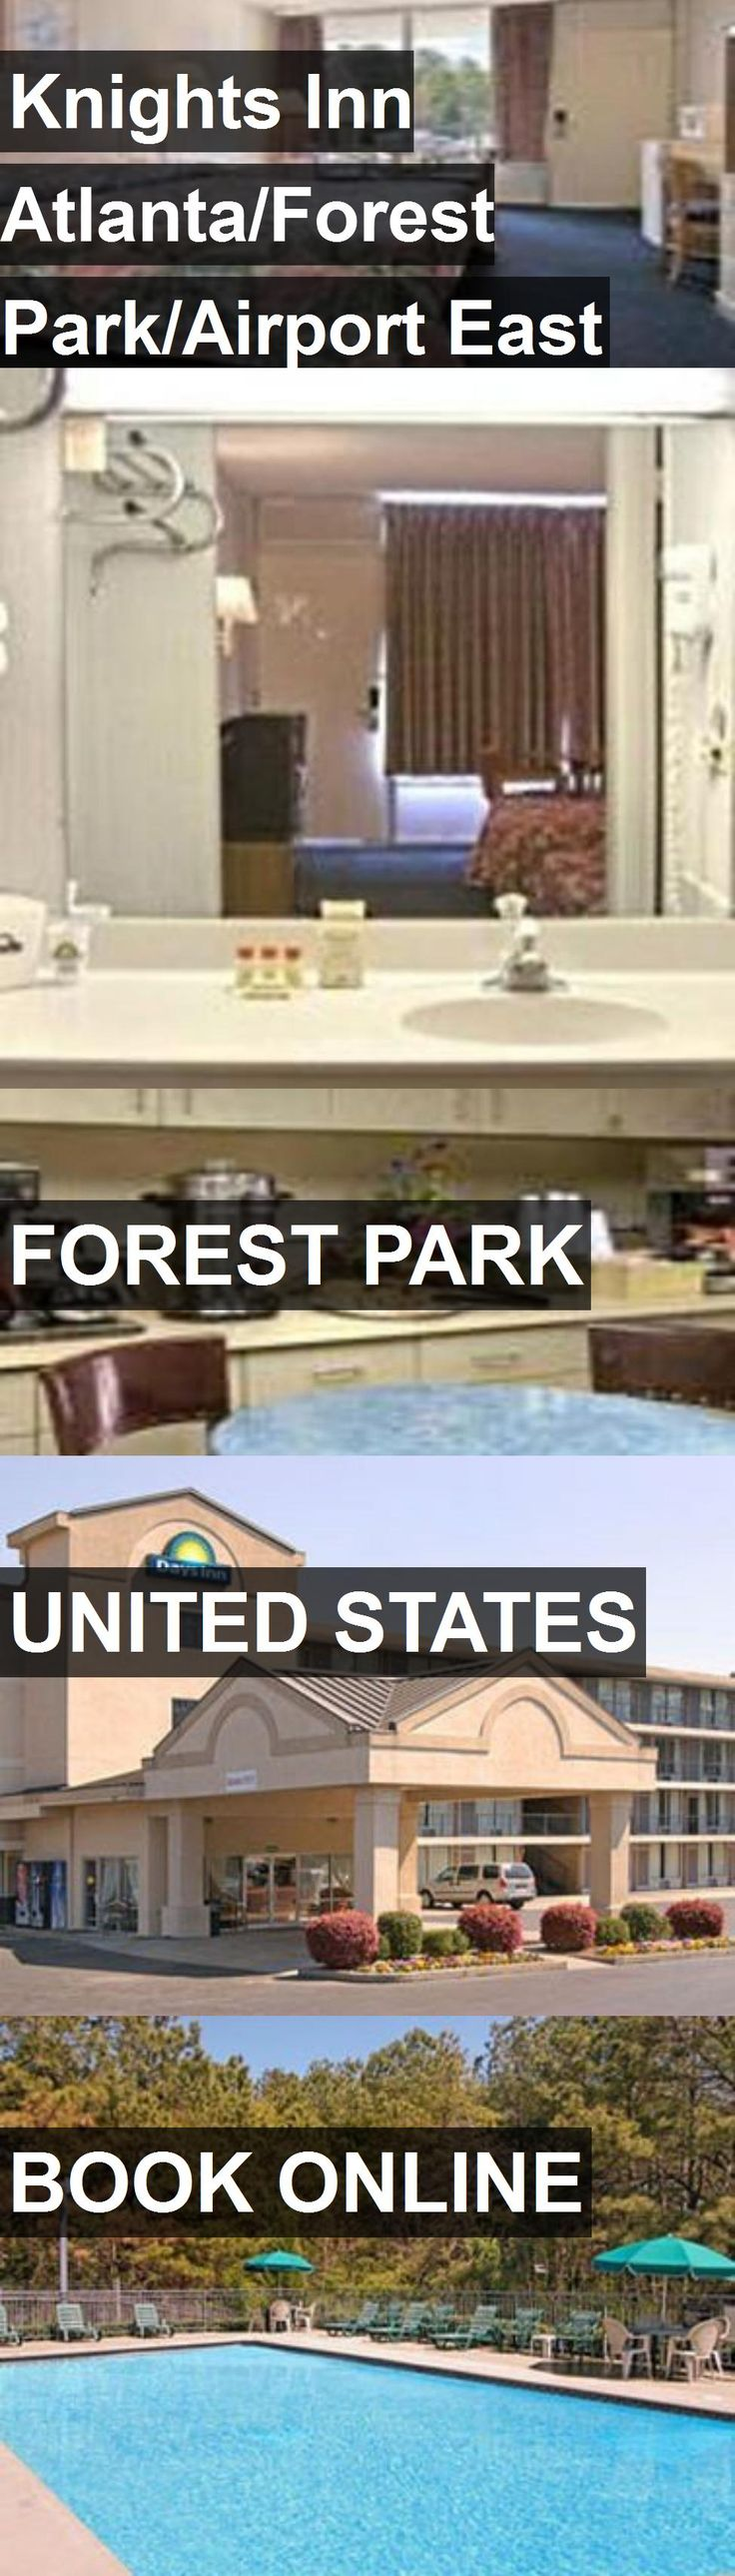 Hotel Knights Inn Atlanta/Forest Park/Airport East in Forest Park, United States. For more information, photos, reviews and best prices please follow the link. #UnitedStates #ForestPark #travel #vacation #hotel